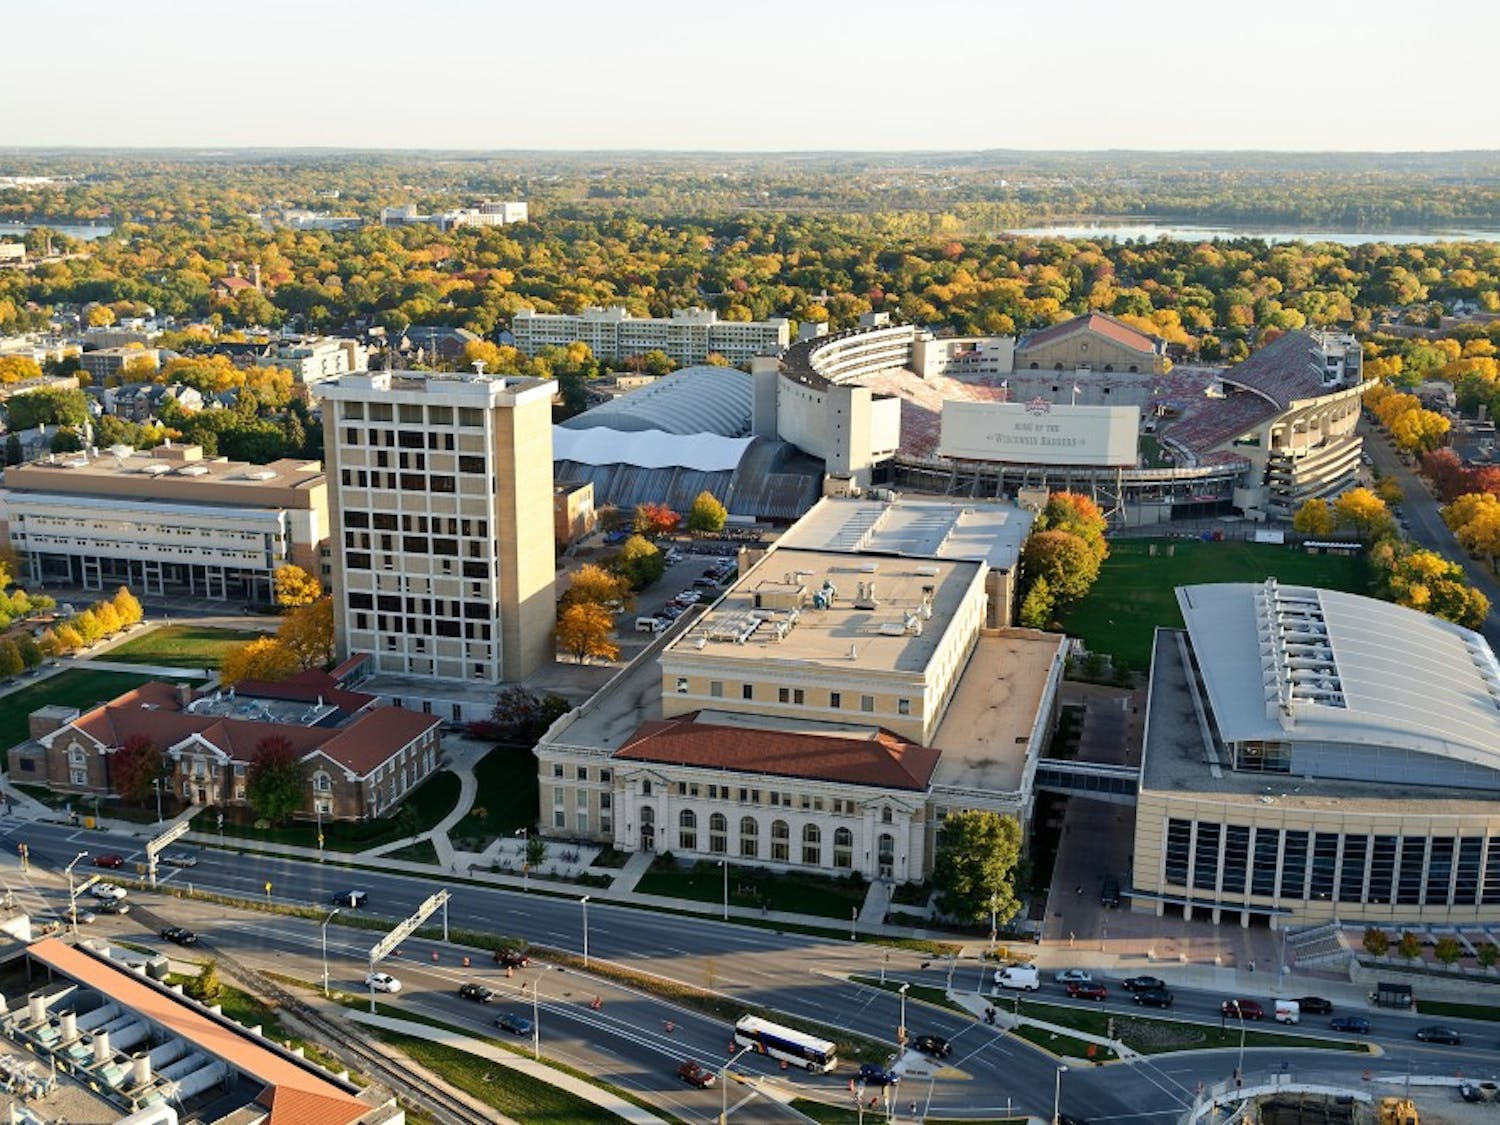 The engineering campus at the University of Wisconsin-Madison is pictured in an aerial view during an autumn sunset on Oct. 5, 2011. Clockwise from bottom right is the Engineering Centers Building, Mechanical Engineering Building, Material Science and Engineering Building, Engineering Hall, and Engineering Research Building. In the background is Camp Randall Stadium. The photograph was made from a helicopter looking south. (Photo by Jeff Miller/UW-Madison)